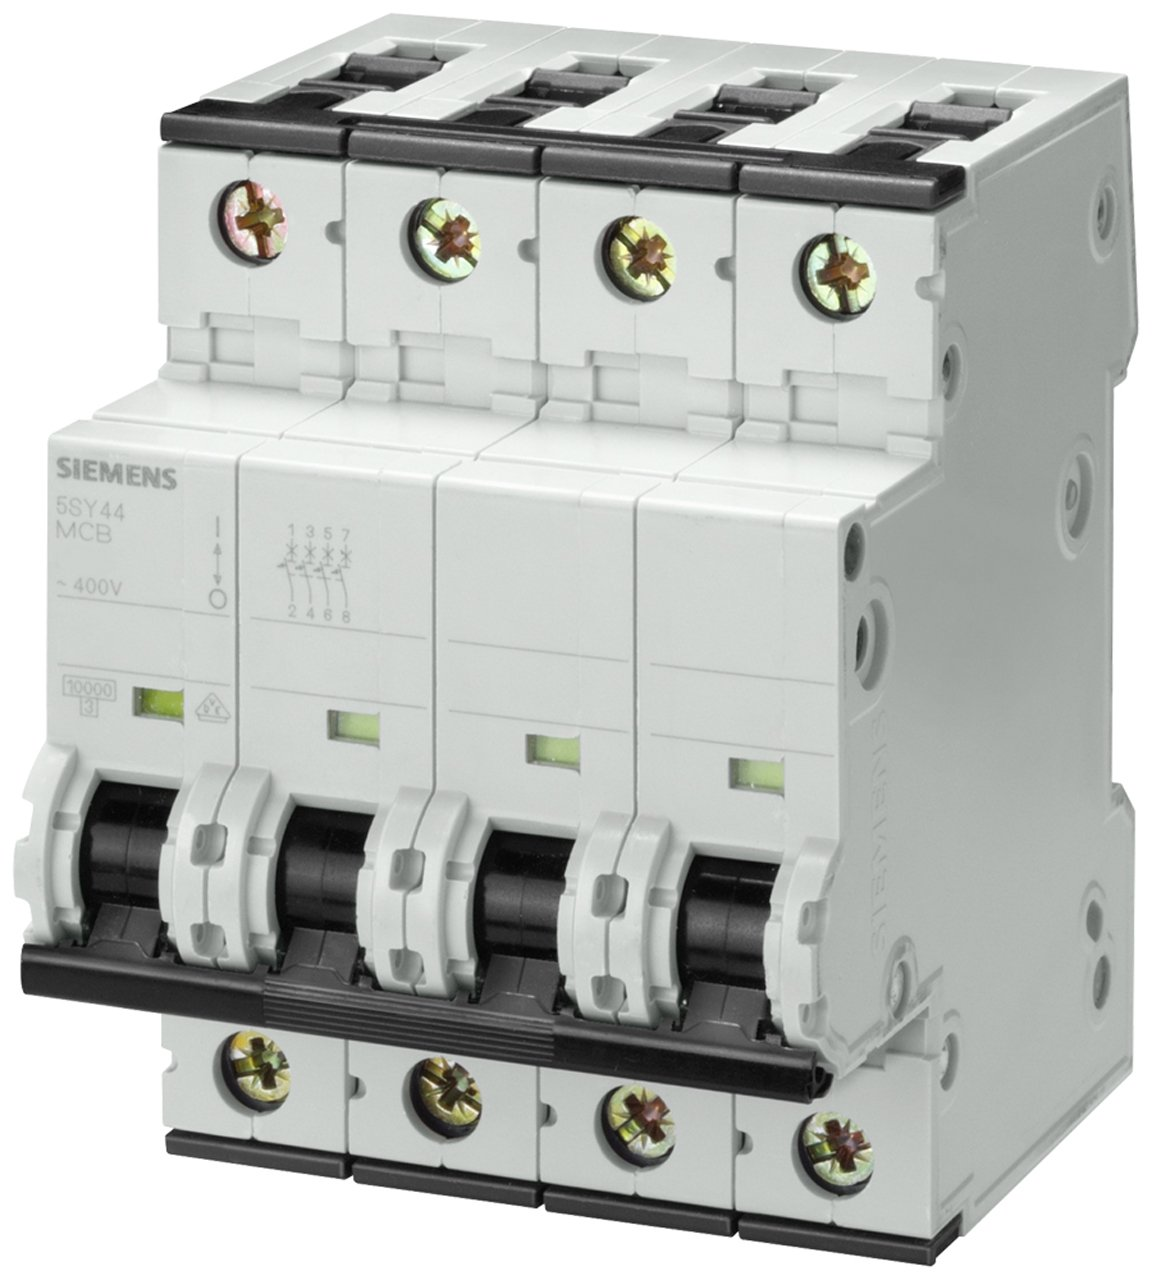 Siemens 5SY44327 Supplementary Protector, UL 1077 Rated, 4 Pole Breaker, 32 Ampere Maximum, Tripping Characteristic C, DIN Rail Mounted